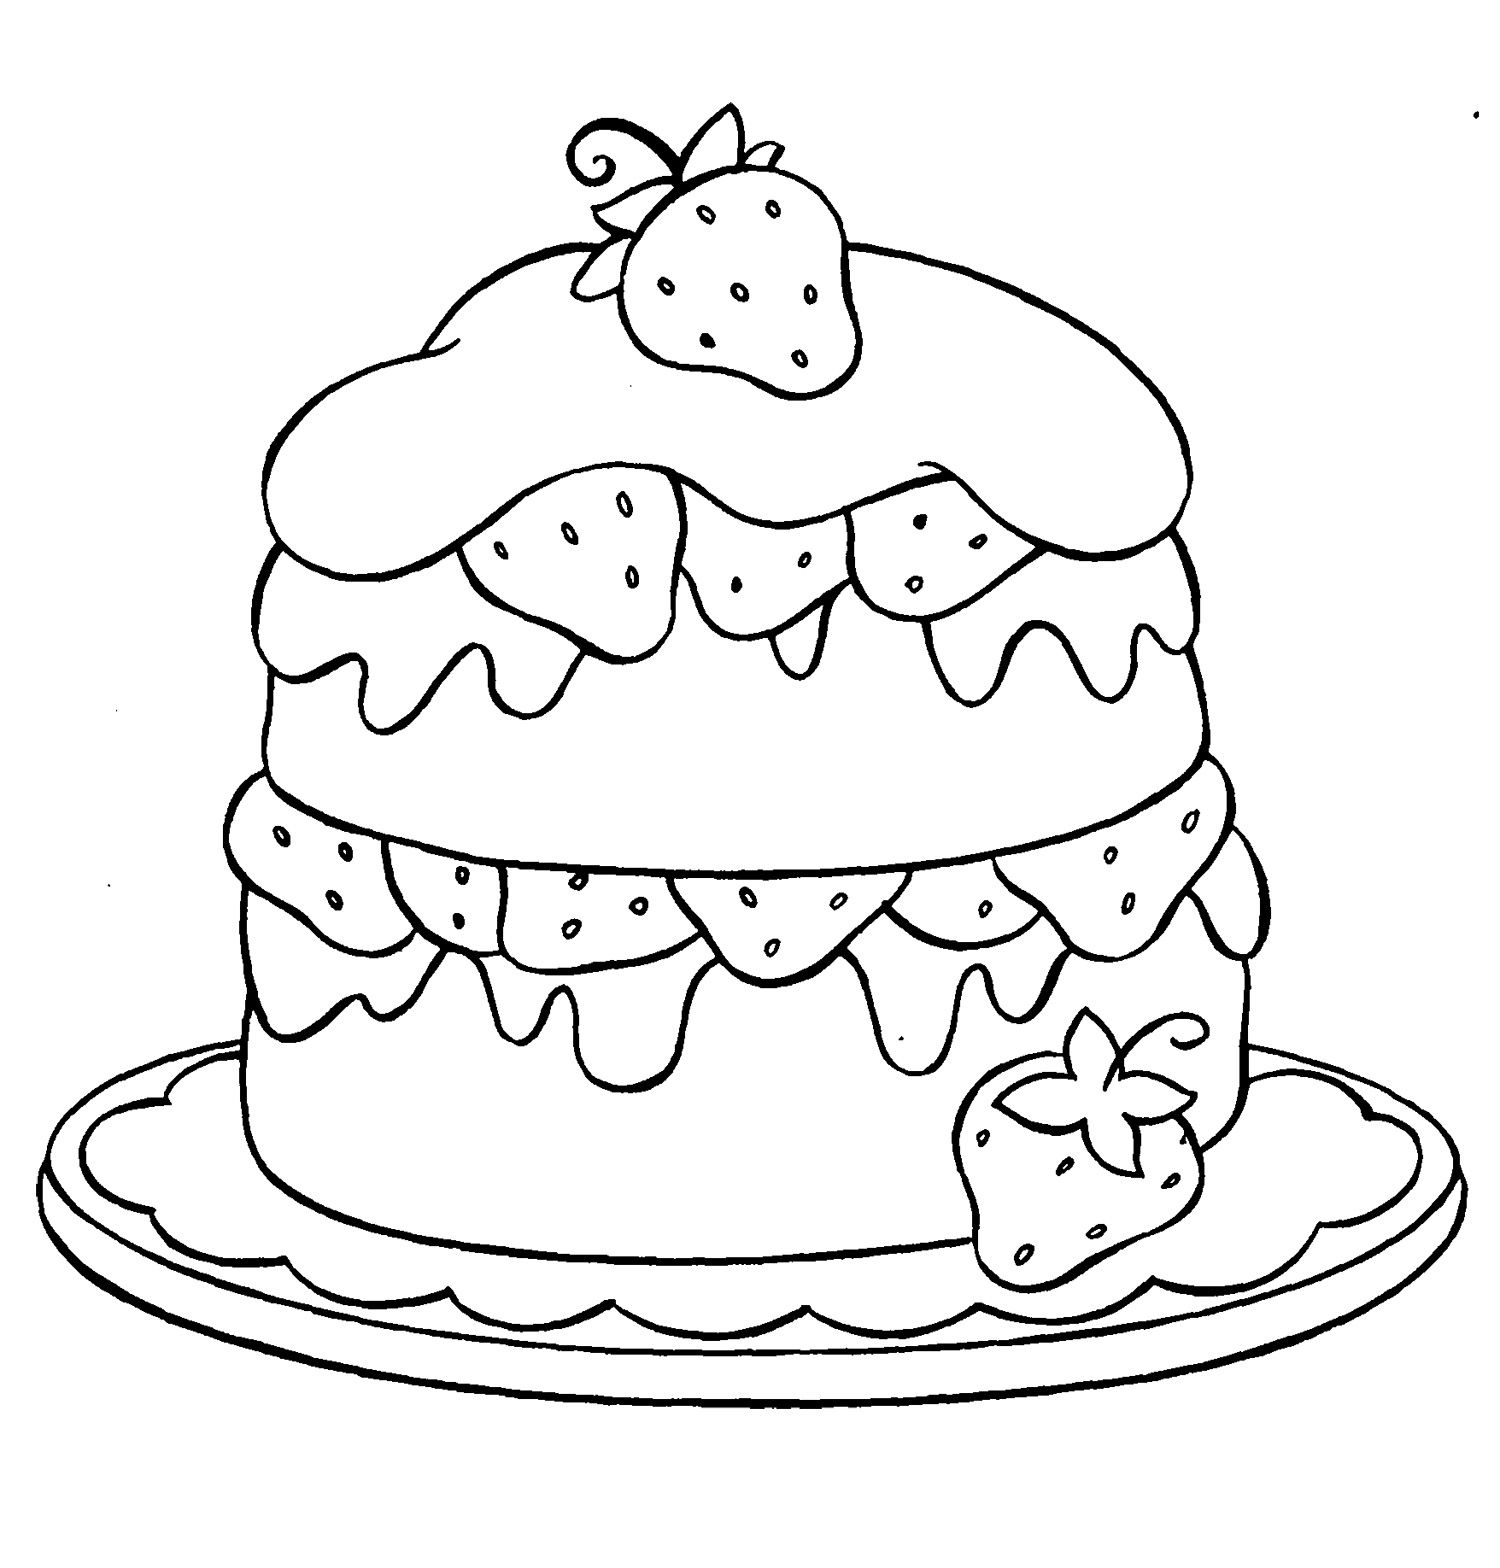 Cupcake Strawberry Coloring Page cupcake/ sweets